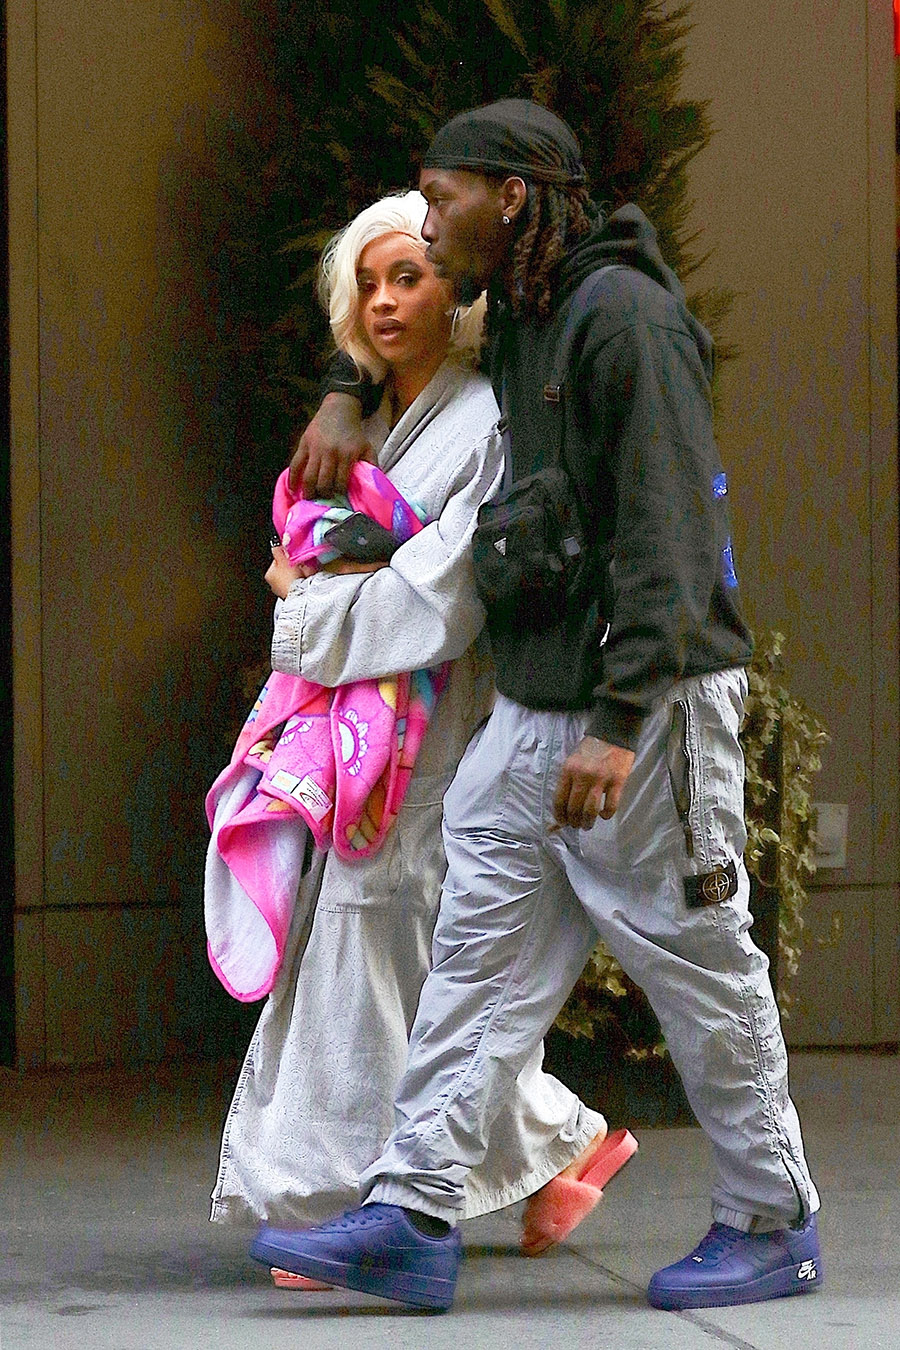 Celebs Out & About: Offset Consoles Cardi B After Assault